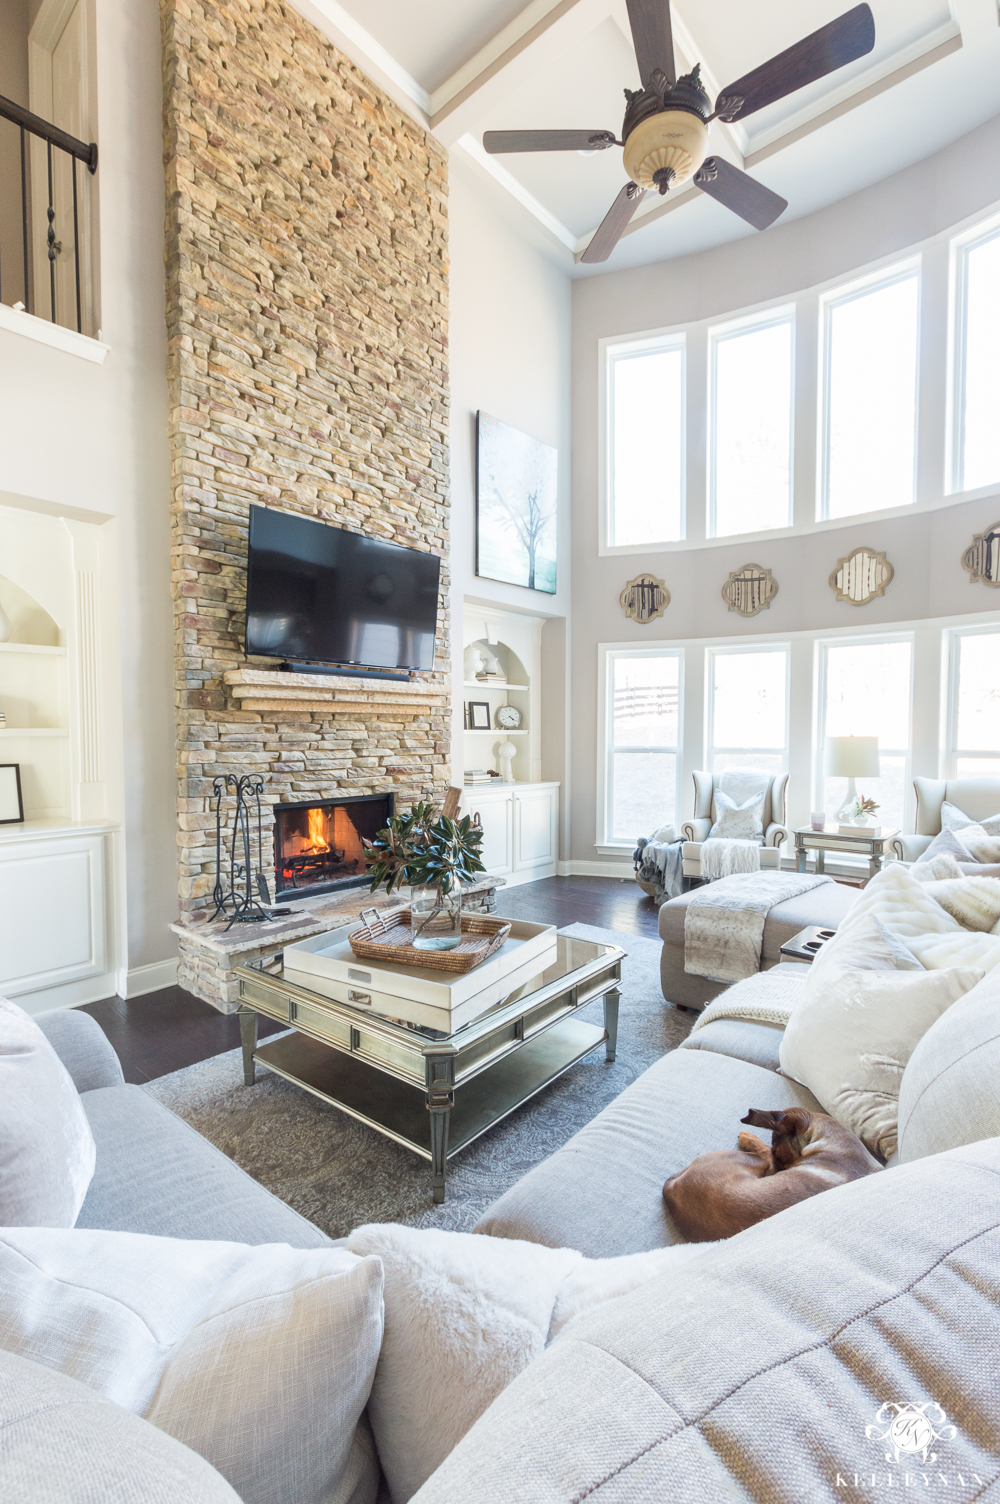 Stacked stone living room fireplace with two story row of windows